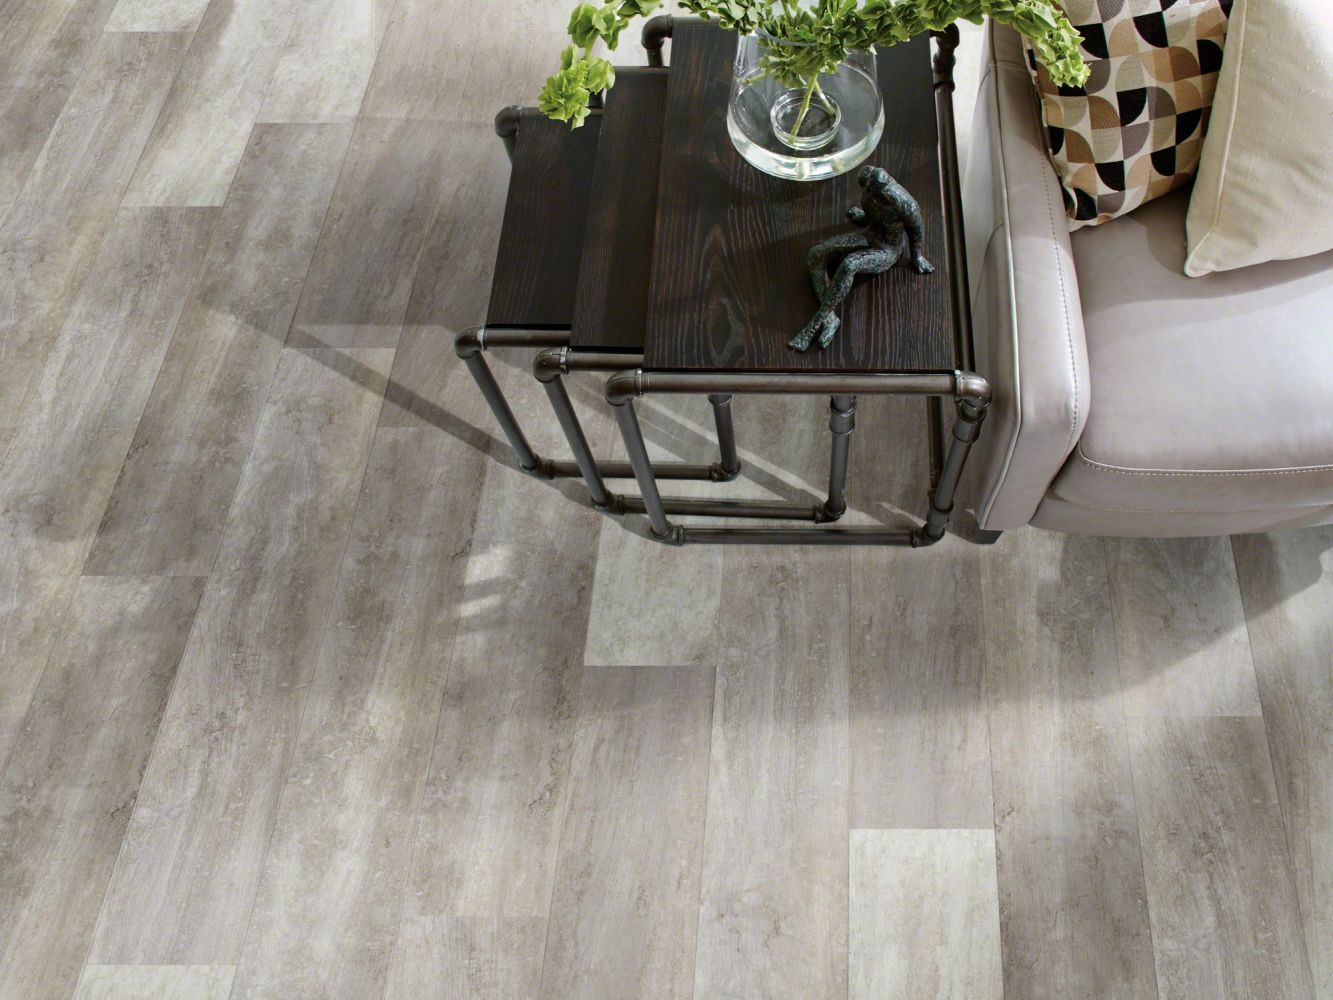 Shaw Floors Nfa HS Ventura Shadow Oak 00592_VH542